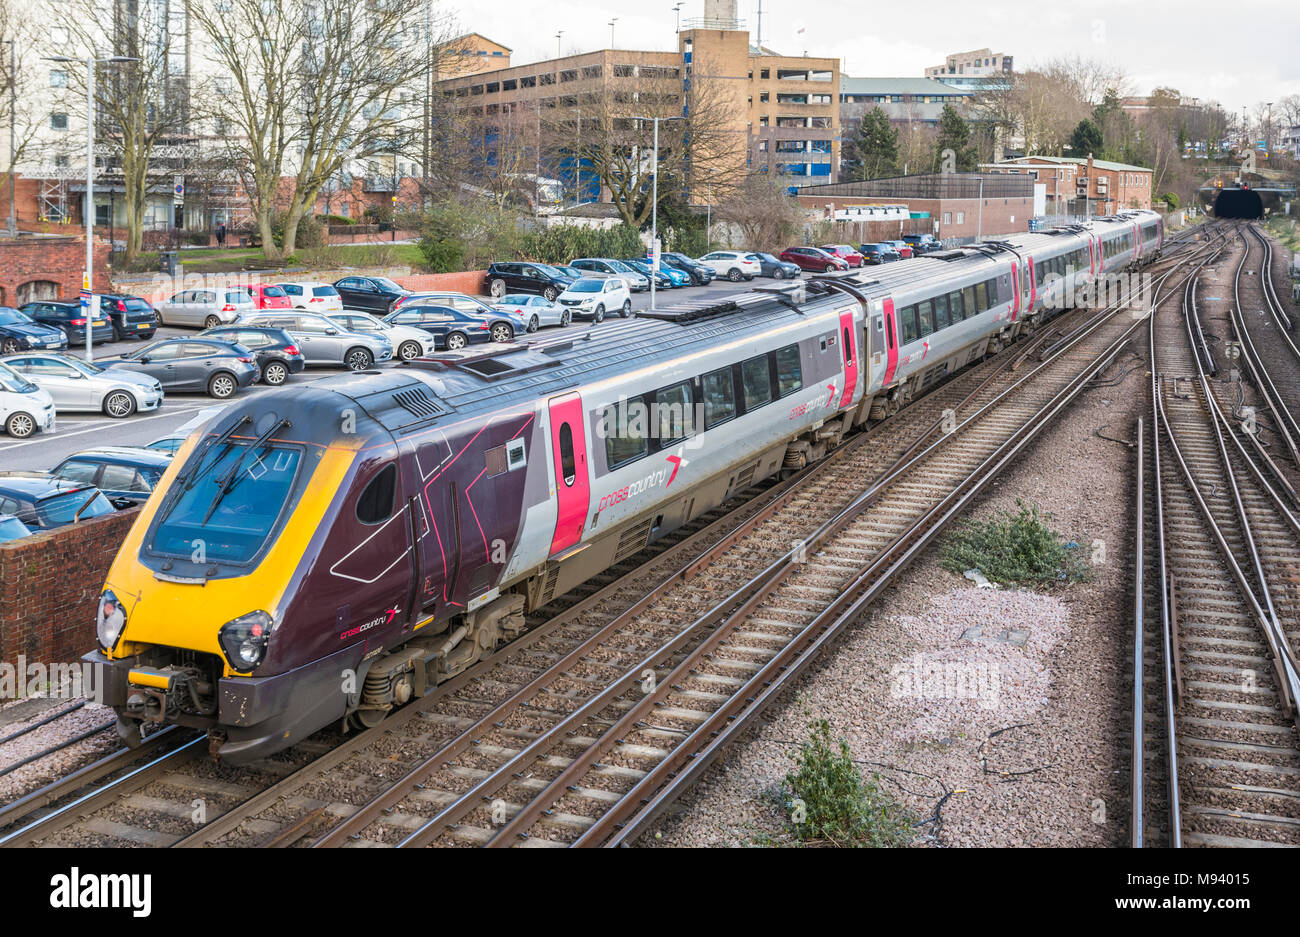 Cross Country (CrossCountry) 5 carriage Voyager train on a British railway in Southampton, Hampshire, England, UK. Travel concept, - Stock Image